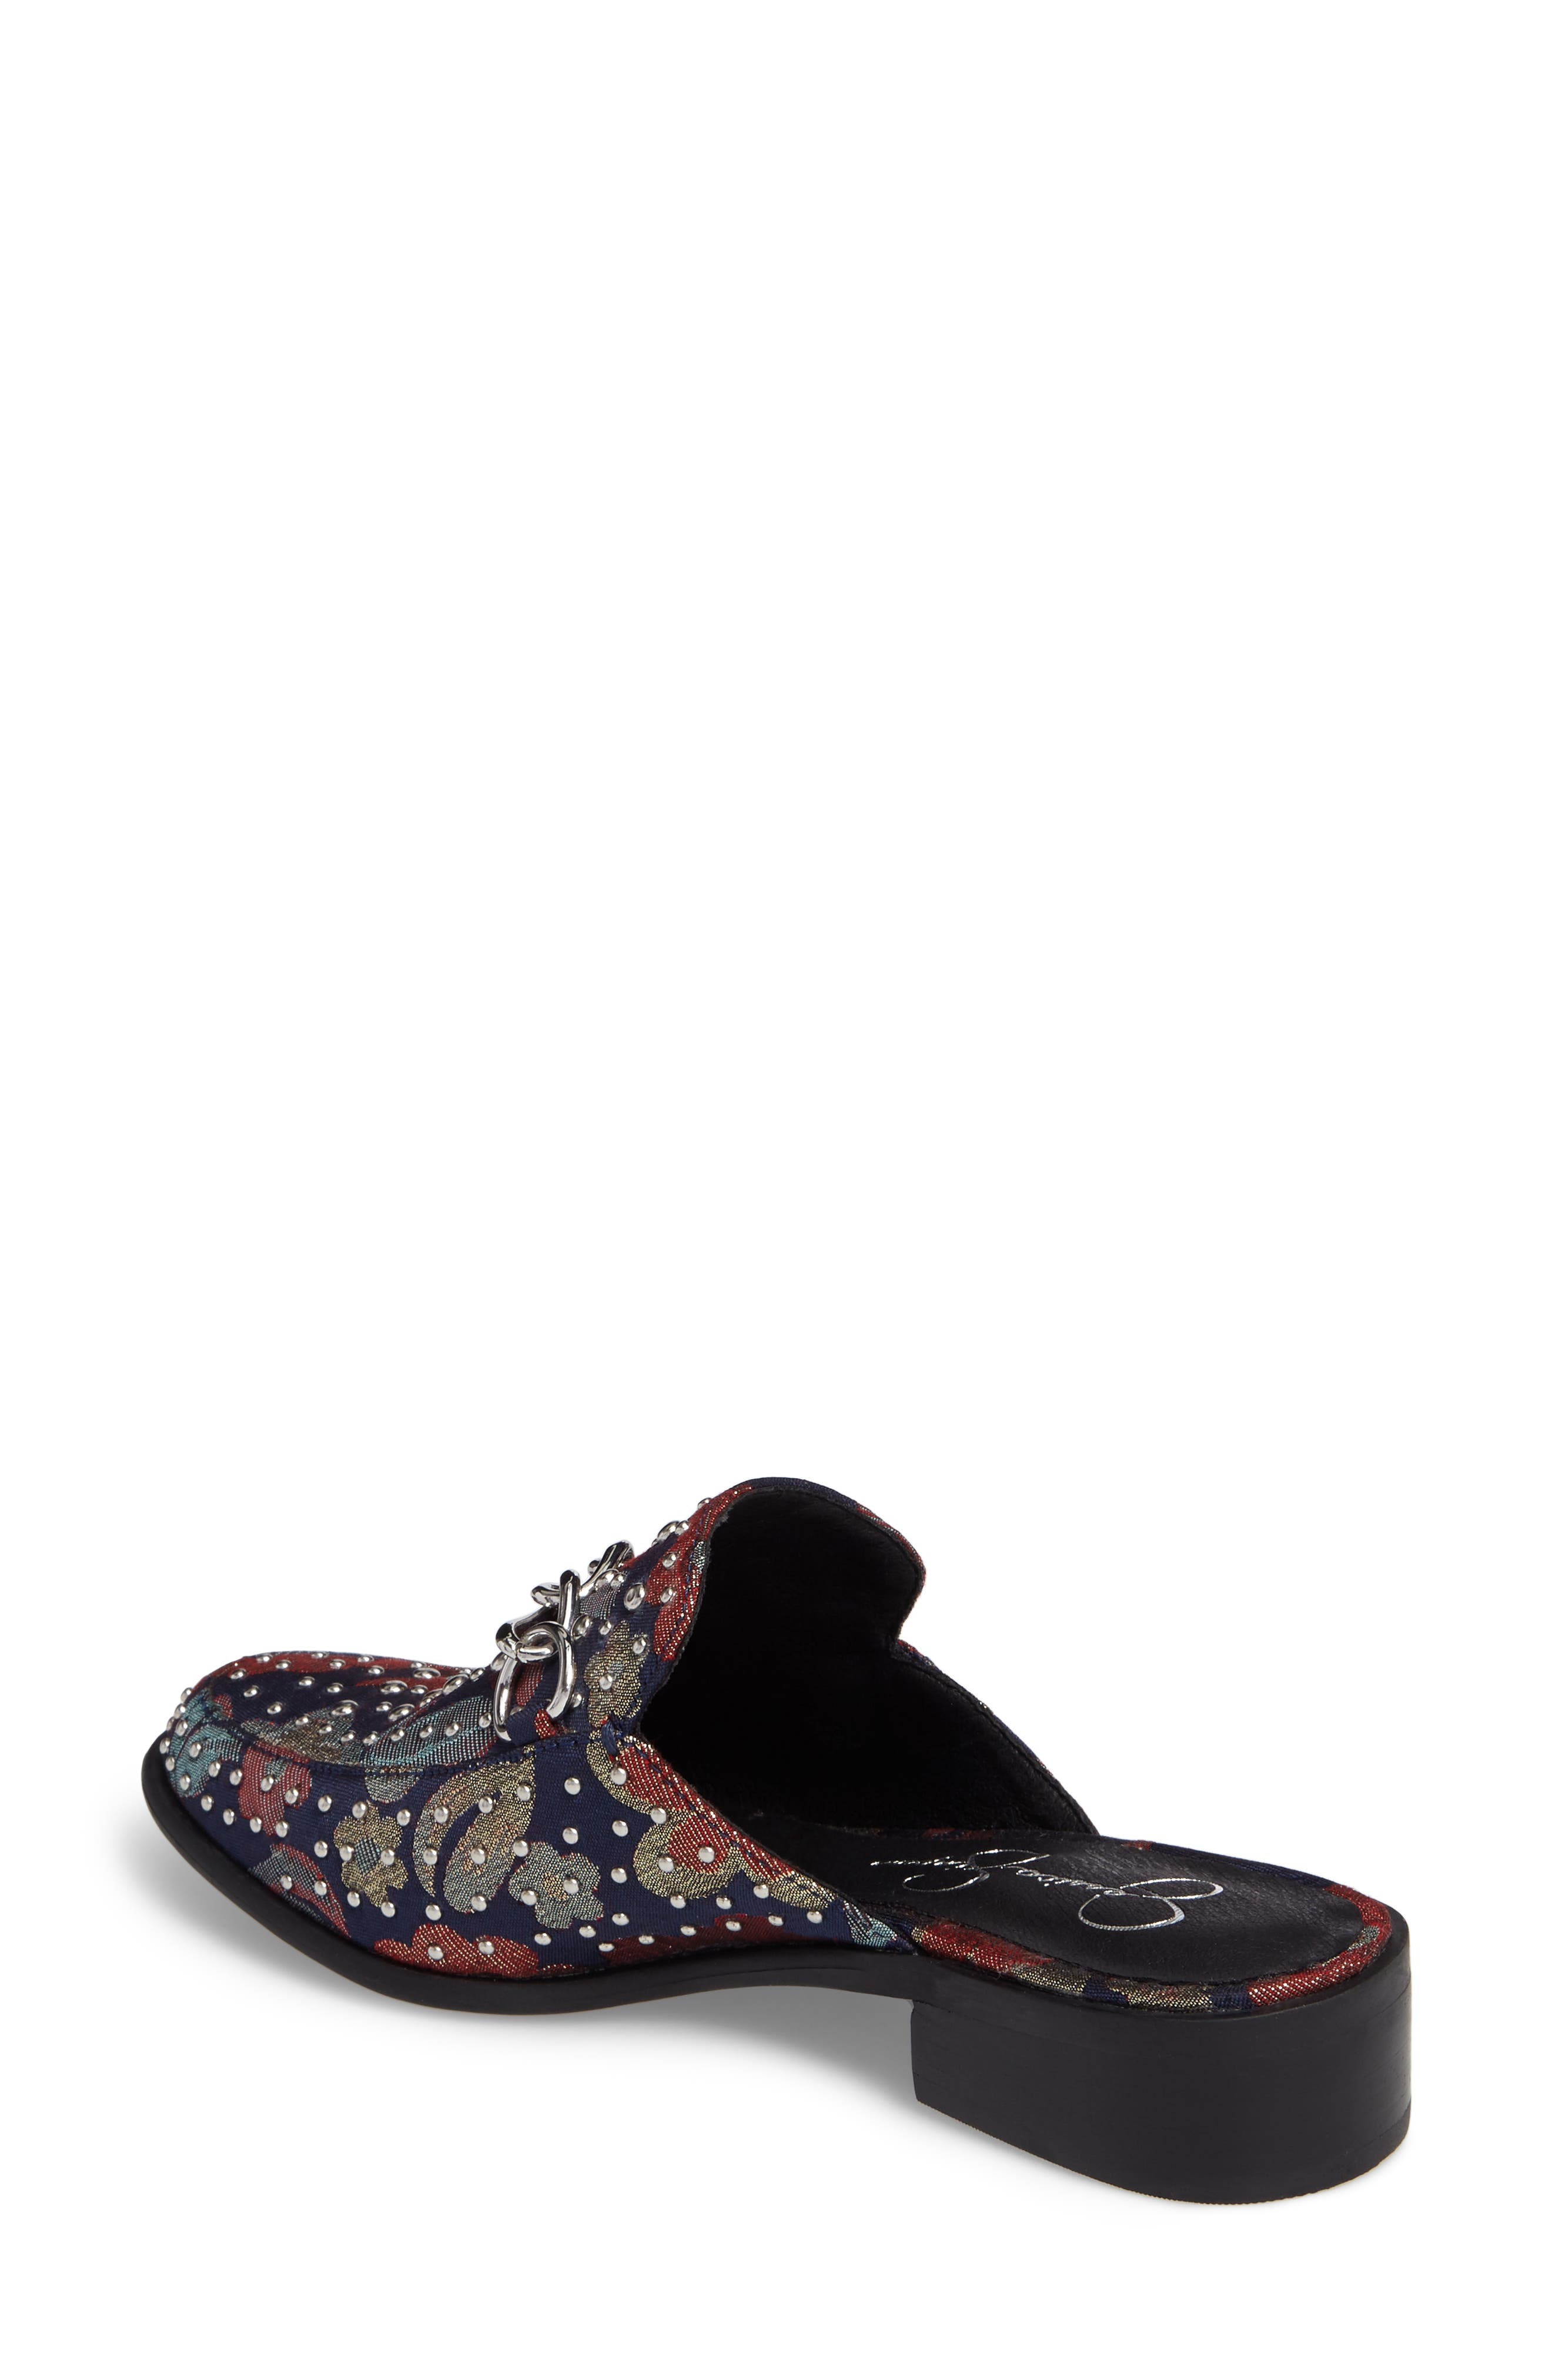 Beez Loafer Mule,                             Alternate thumbnail 2, color,                             Blue Multi Brocade Fabric